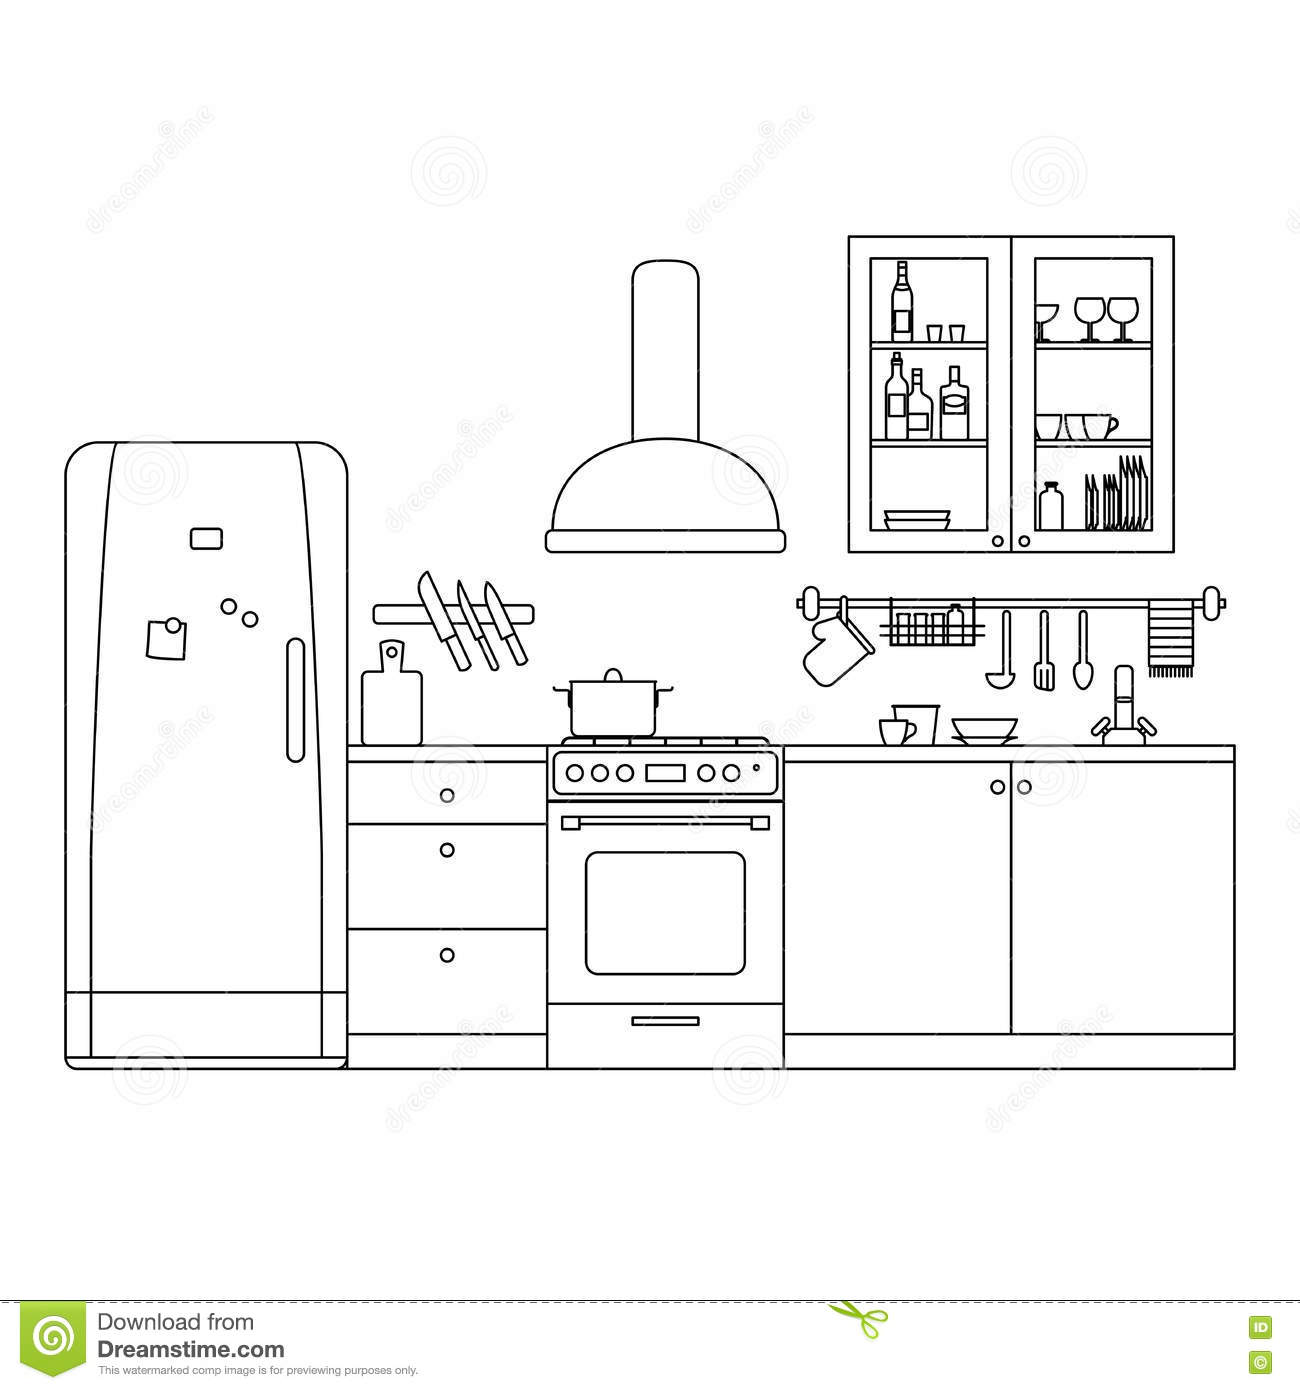 Kitchen Line Messerset : kitchen line interior stock vector image 72853990 ~ Whattoseeinmadrid.com Haus und Dekorationen